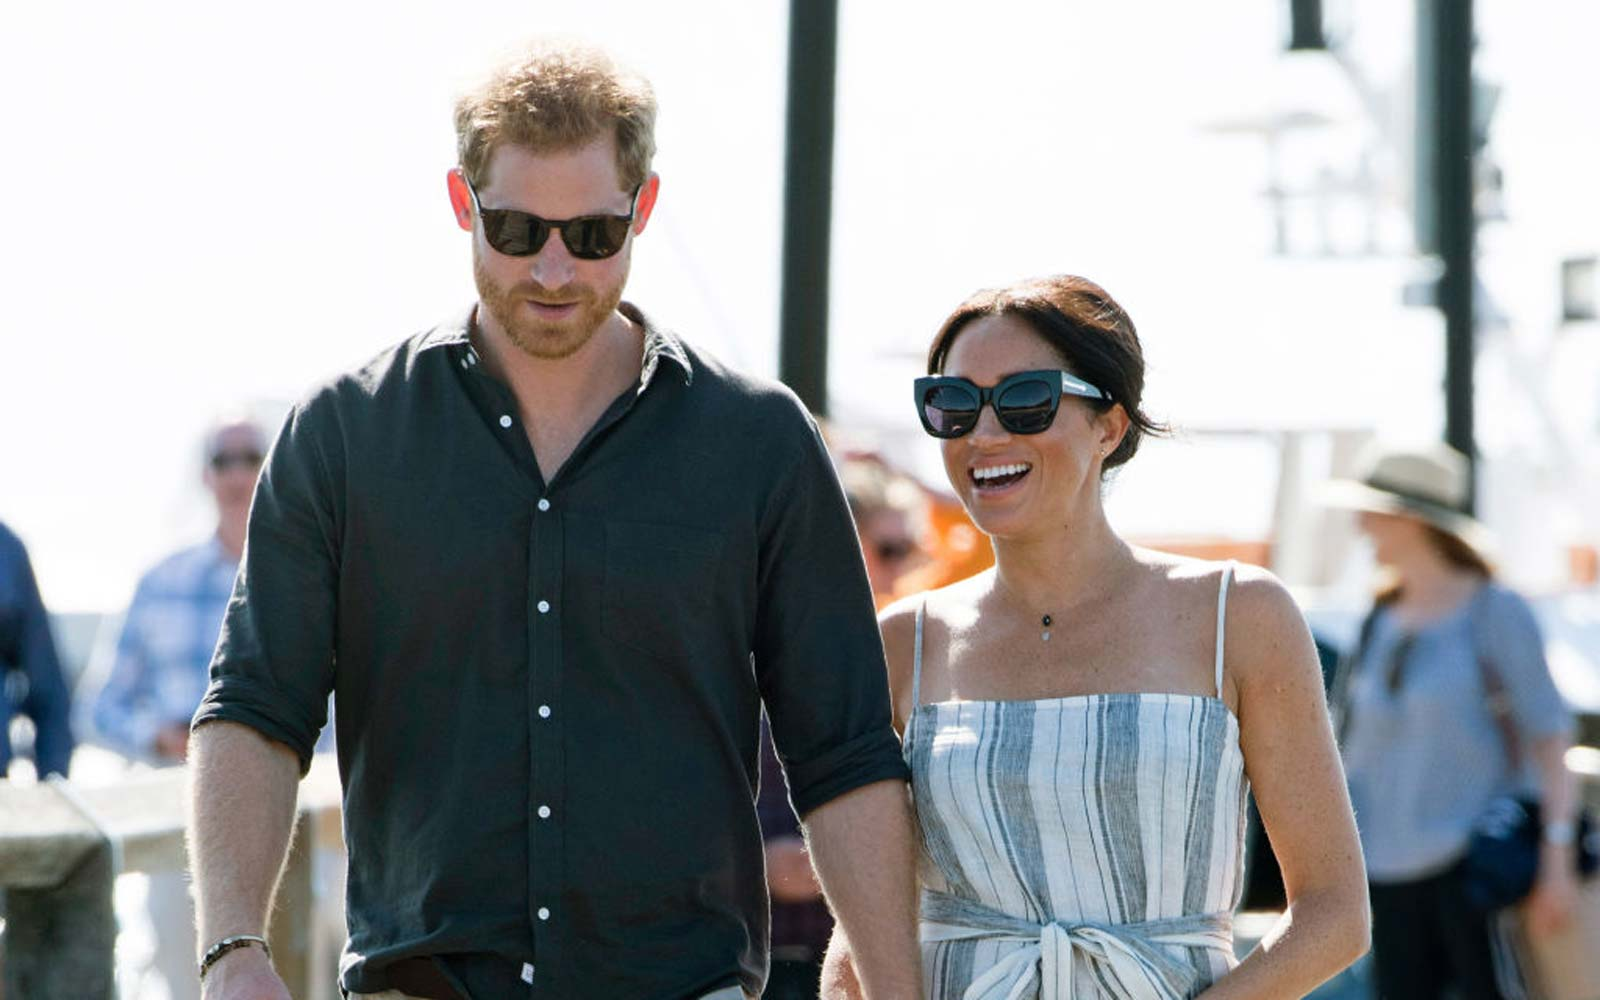 Prince Harry, Duke of Sussex and Meghan, Duchess of Sussex visit Kingfisher Bay Resort